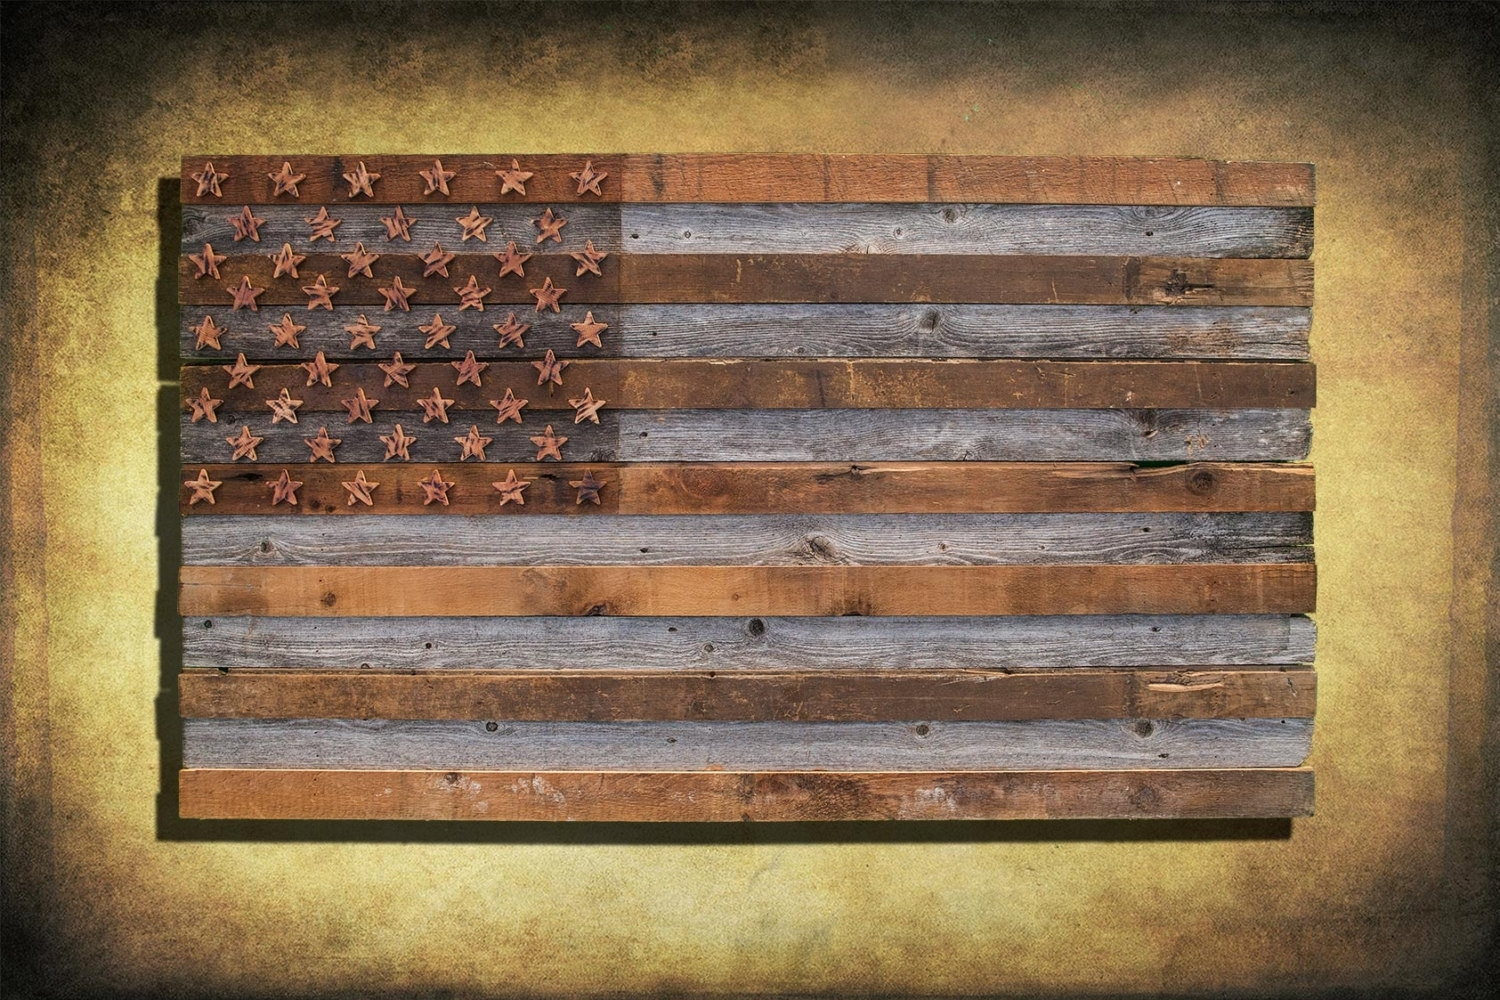 Barnwood American Flag, 100 Year Old Wood, One Of A Kind, 3d, Wooden Intended For Latest Vintage American Flag Wall Art (View 2 of 20)